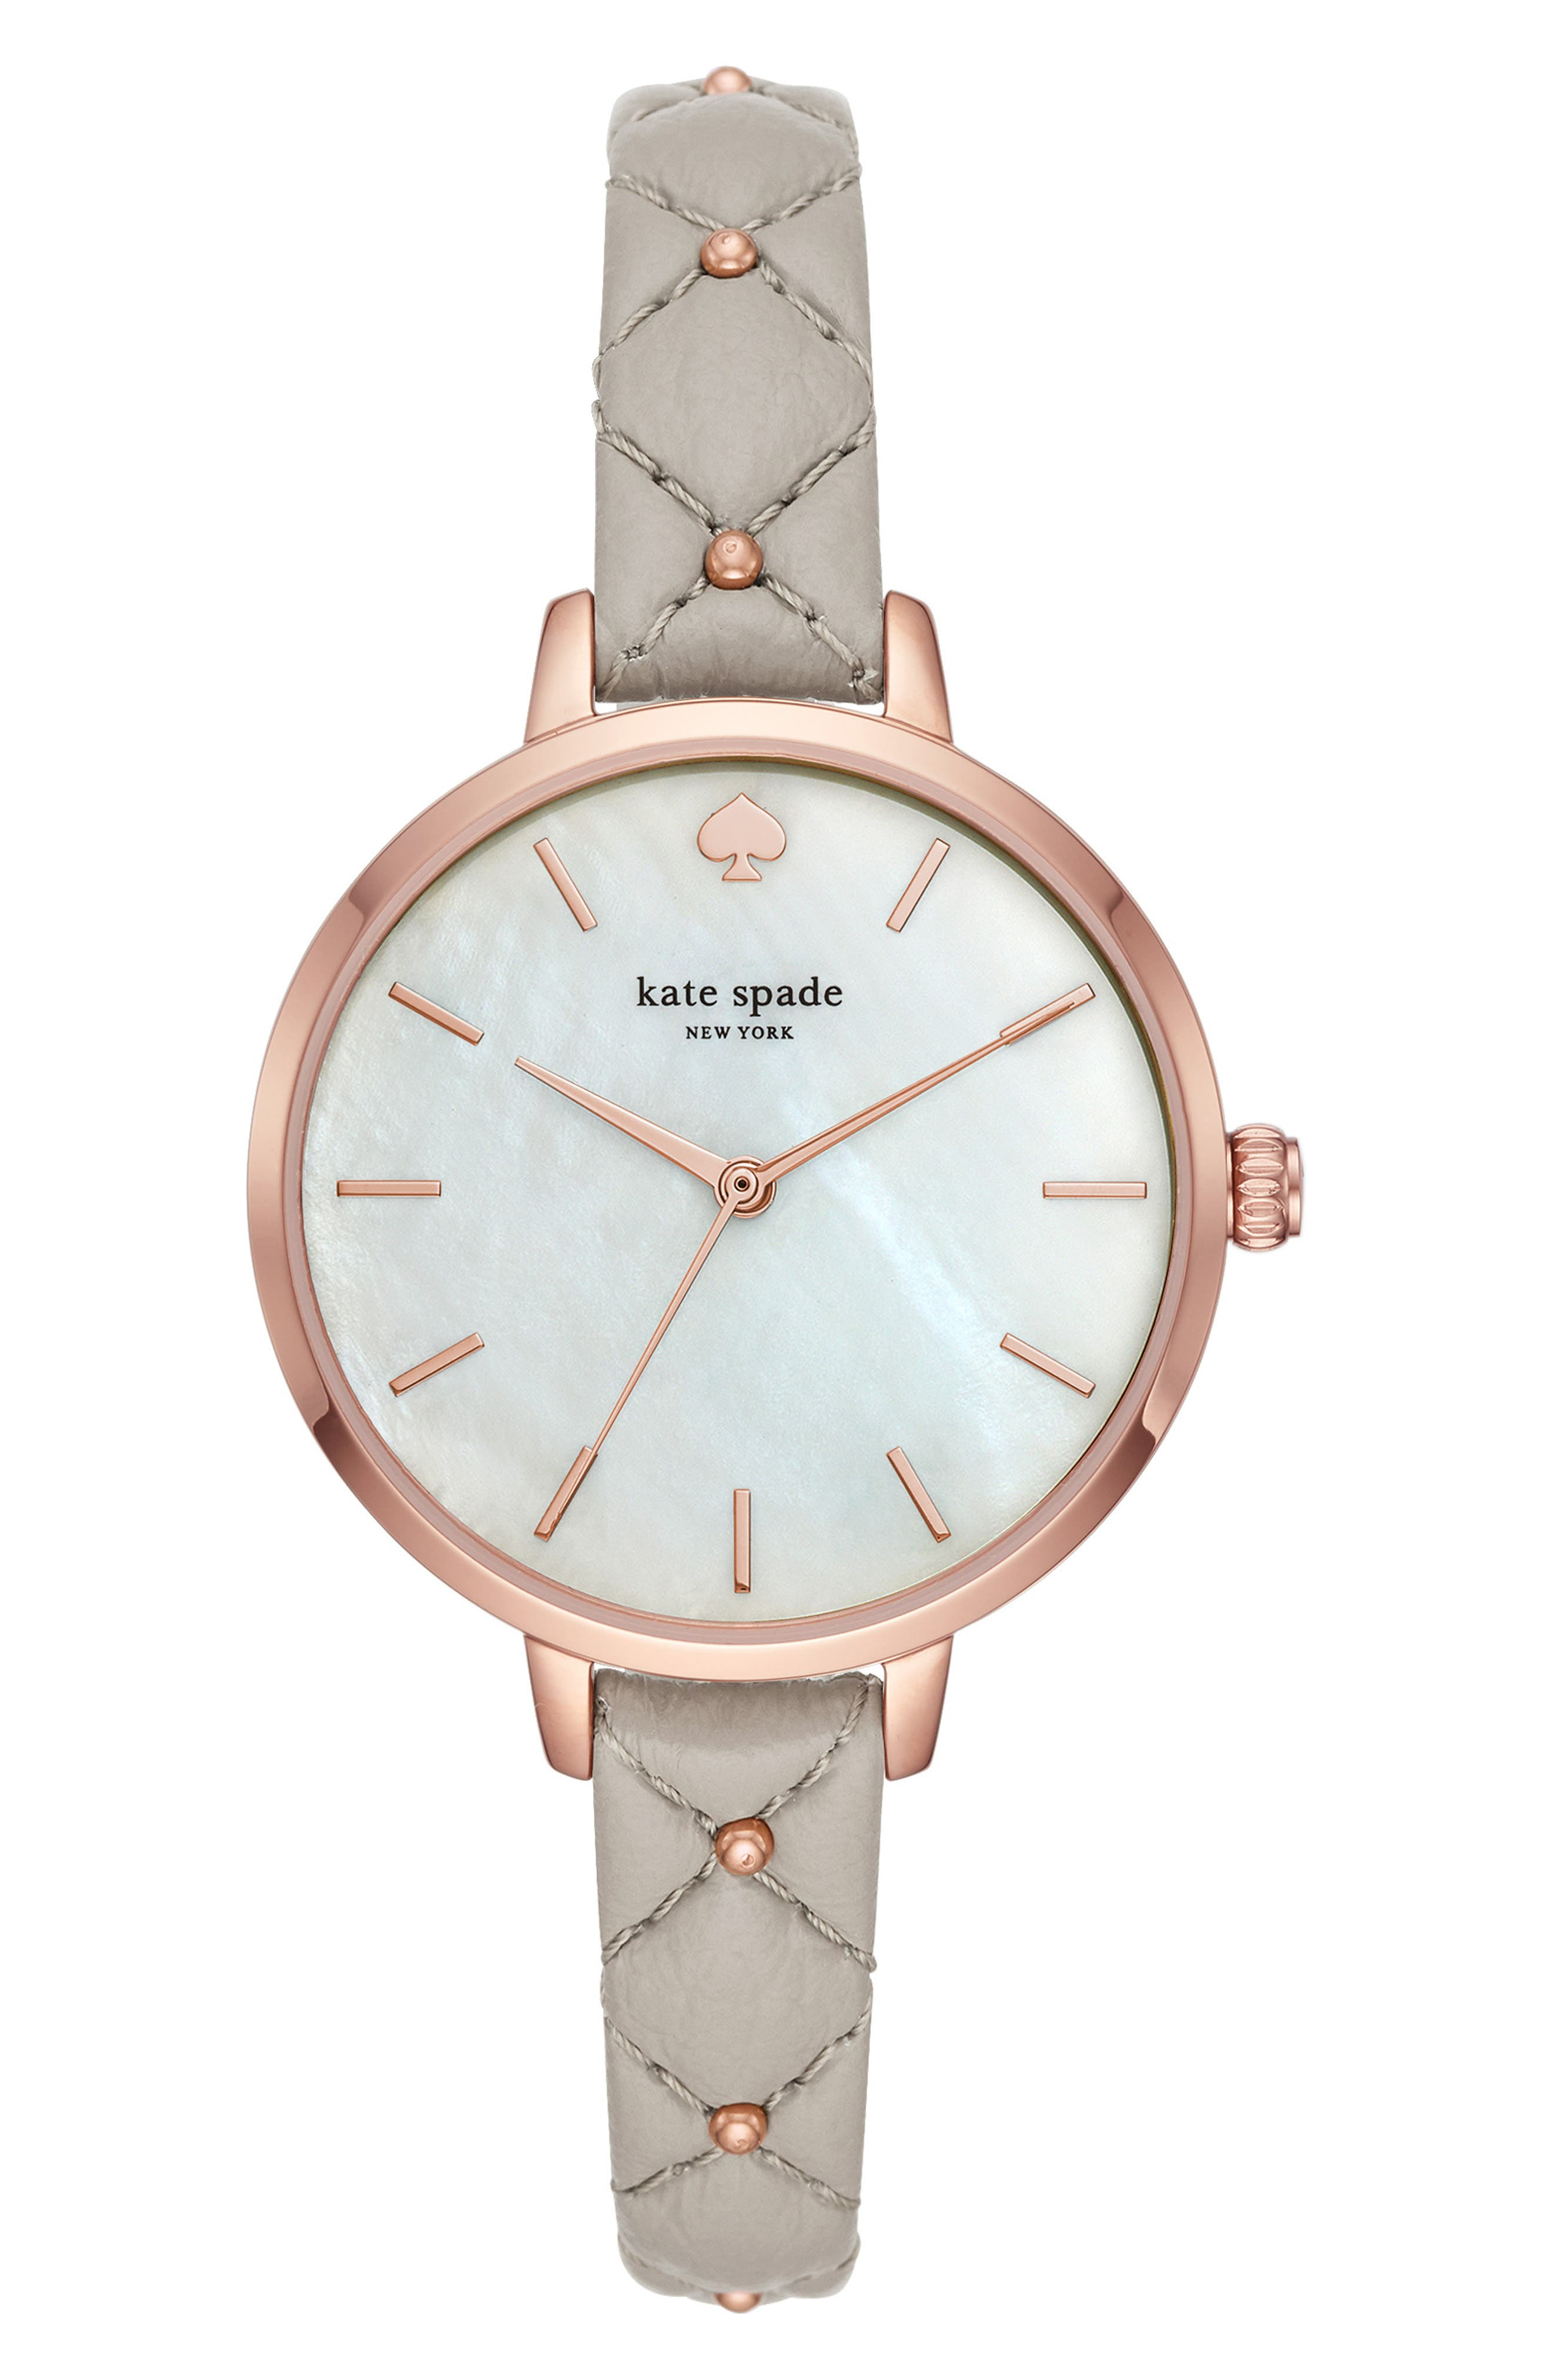 metro leather strap watch, 34mm, Main, color, 020